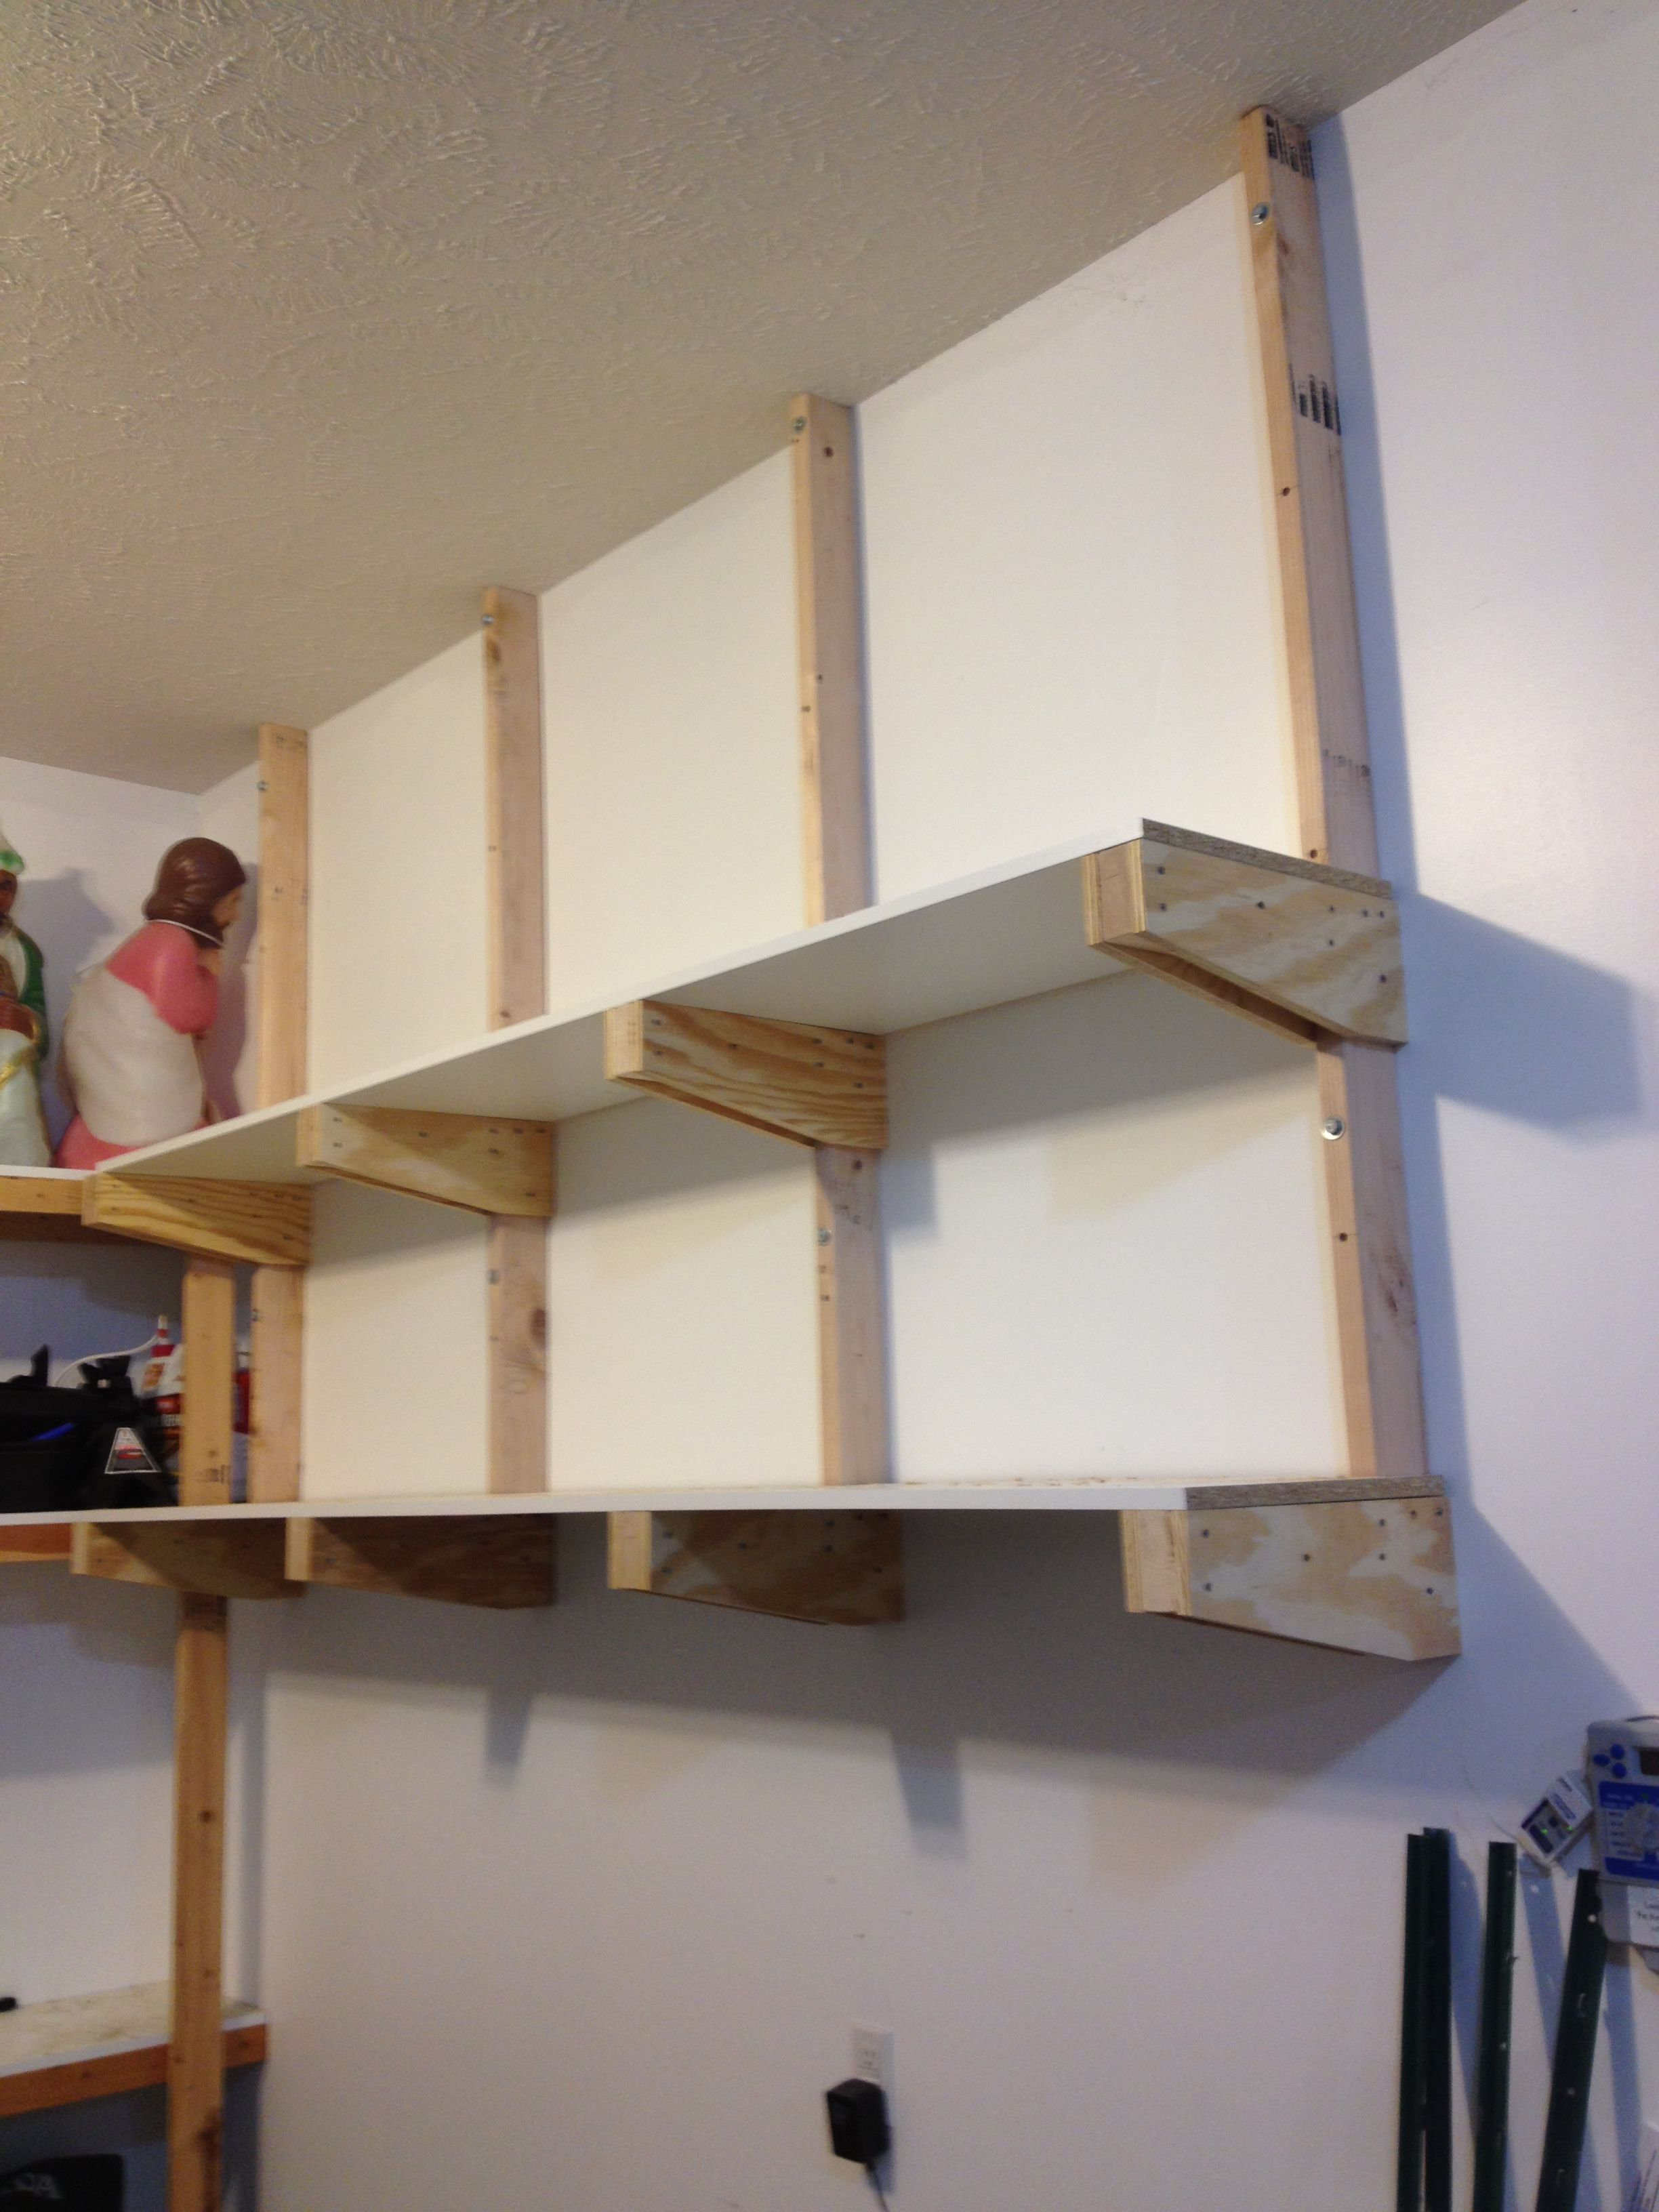 http www.askthebuilder.com how-to-garage-shelving-ideas - DIY Garage Storage Shelves Garage